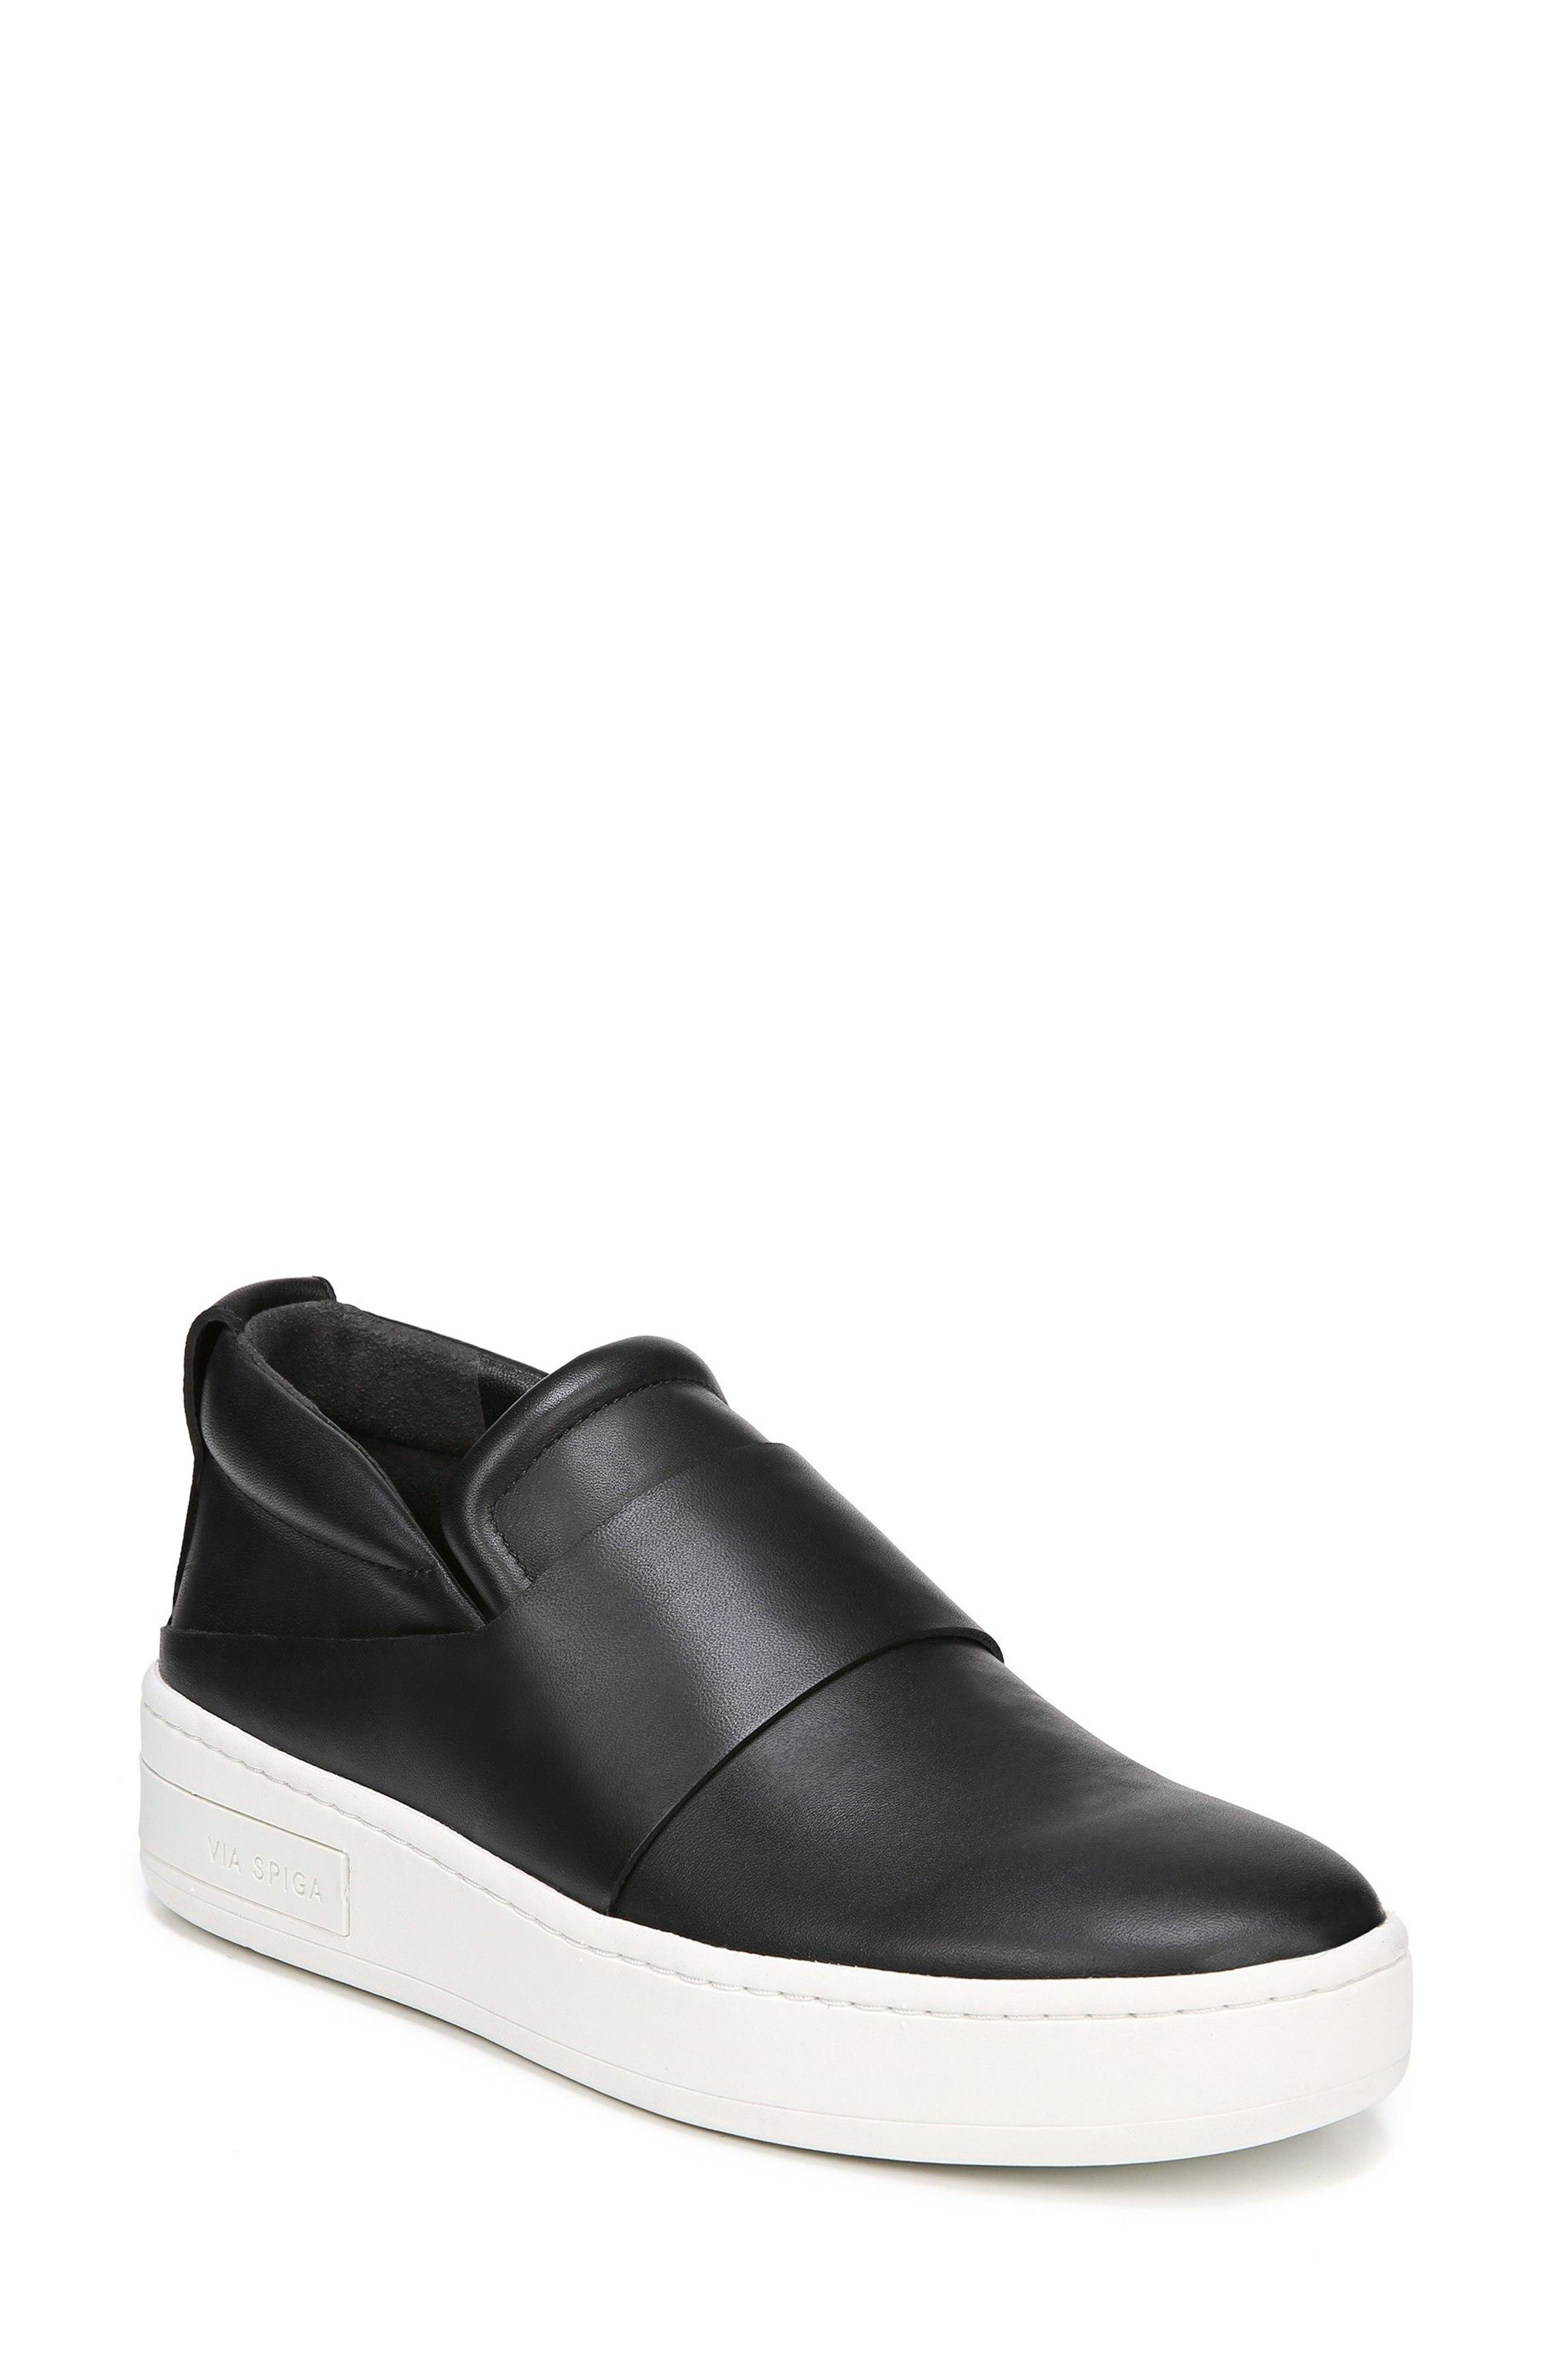 Ryder Slip-On Sneaker,                         Main,                         color, BLACK LEATHER